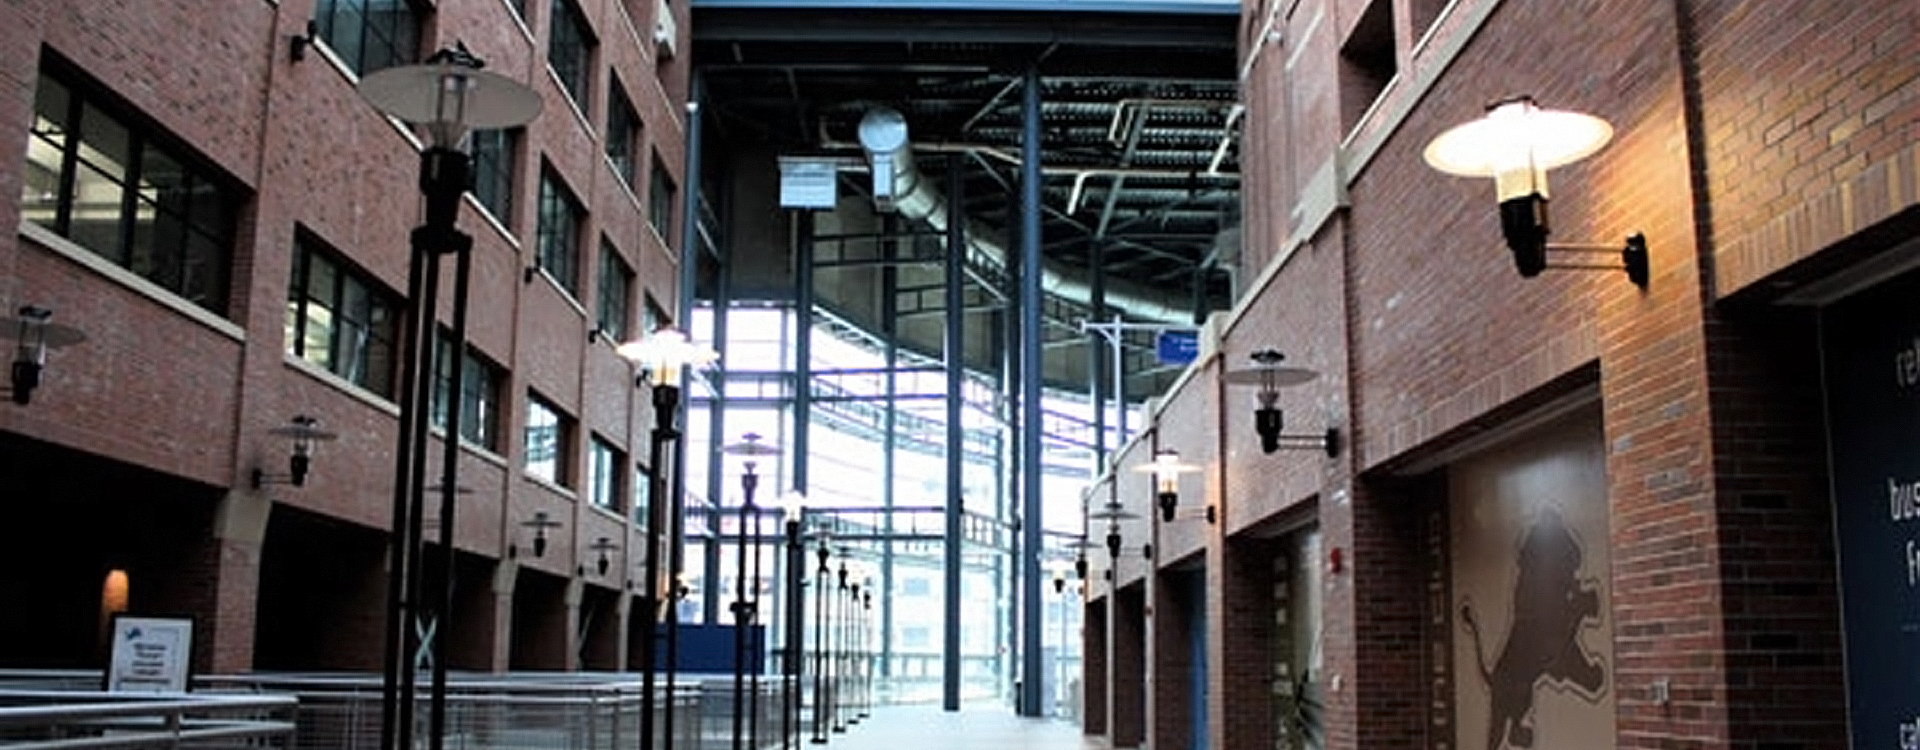 ford_field_atrium-3